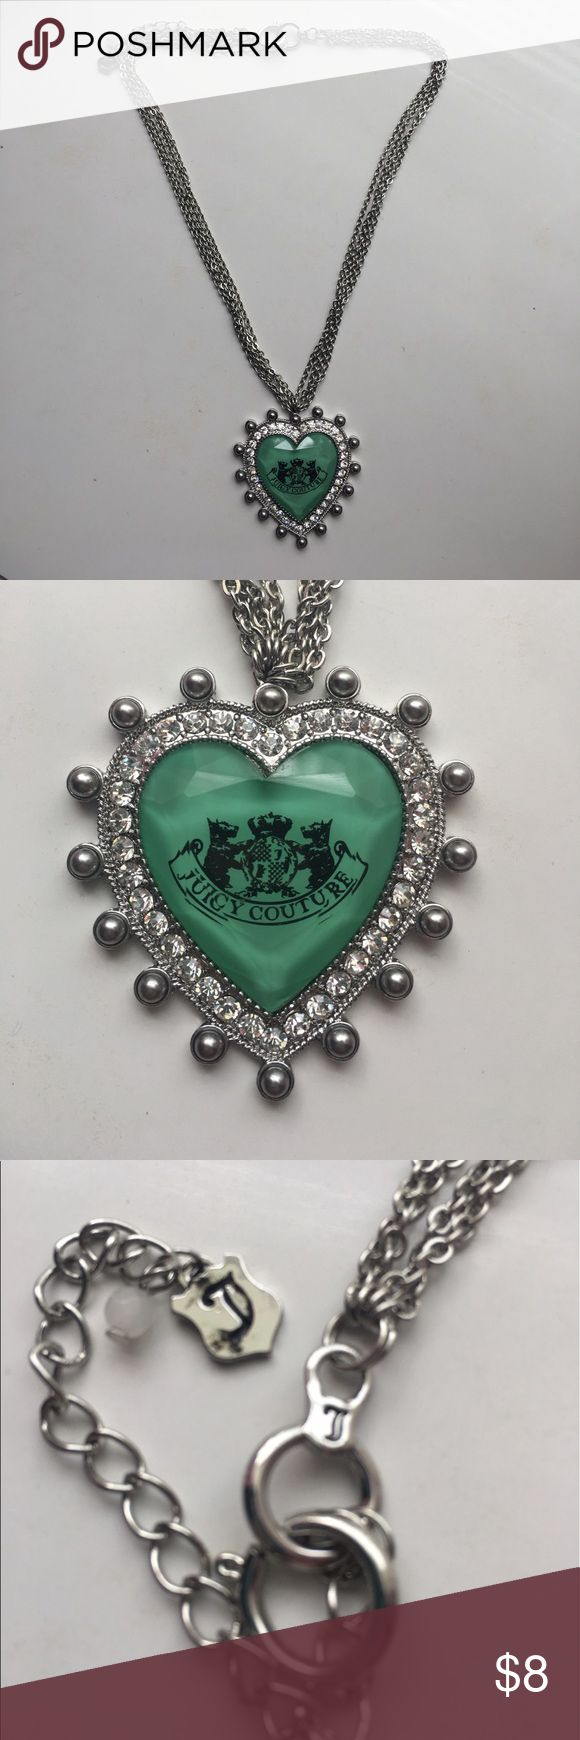 🆕 Juicy Couture Necklace! NWOT! Never Worn! New! No tags but never worn! From the Juicy Couture Collection at Kohl's! Decorate heart with the Juicy Couture Logo in the center! Fun to wear by itself or to layer up! Juicy Couture Jewelry Necklaces